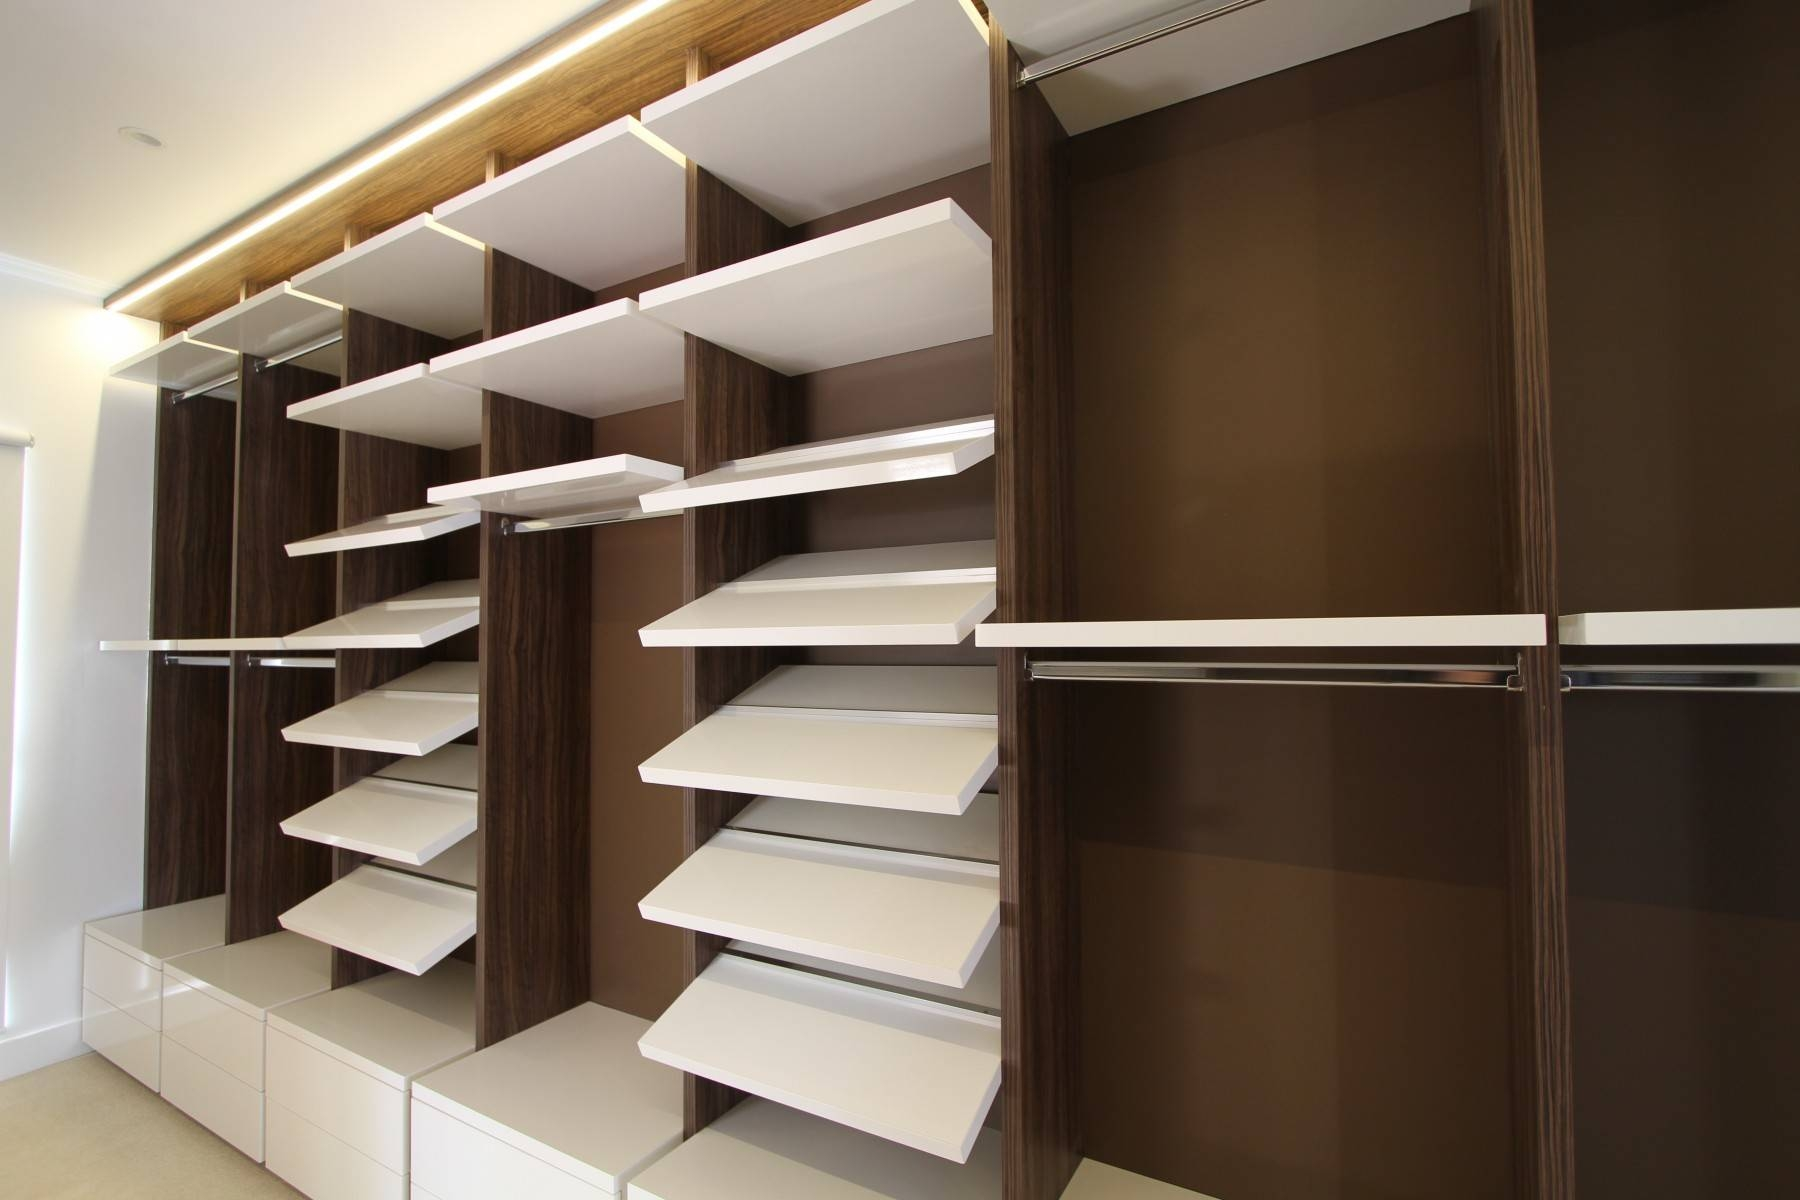 Signature Wardrobes – Just Wardrobes & Storage Regarding Signature Wardrobes (View 12 of 15)